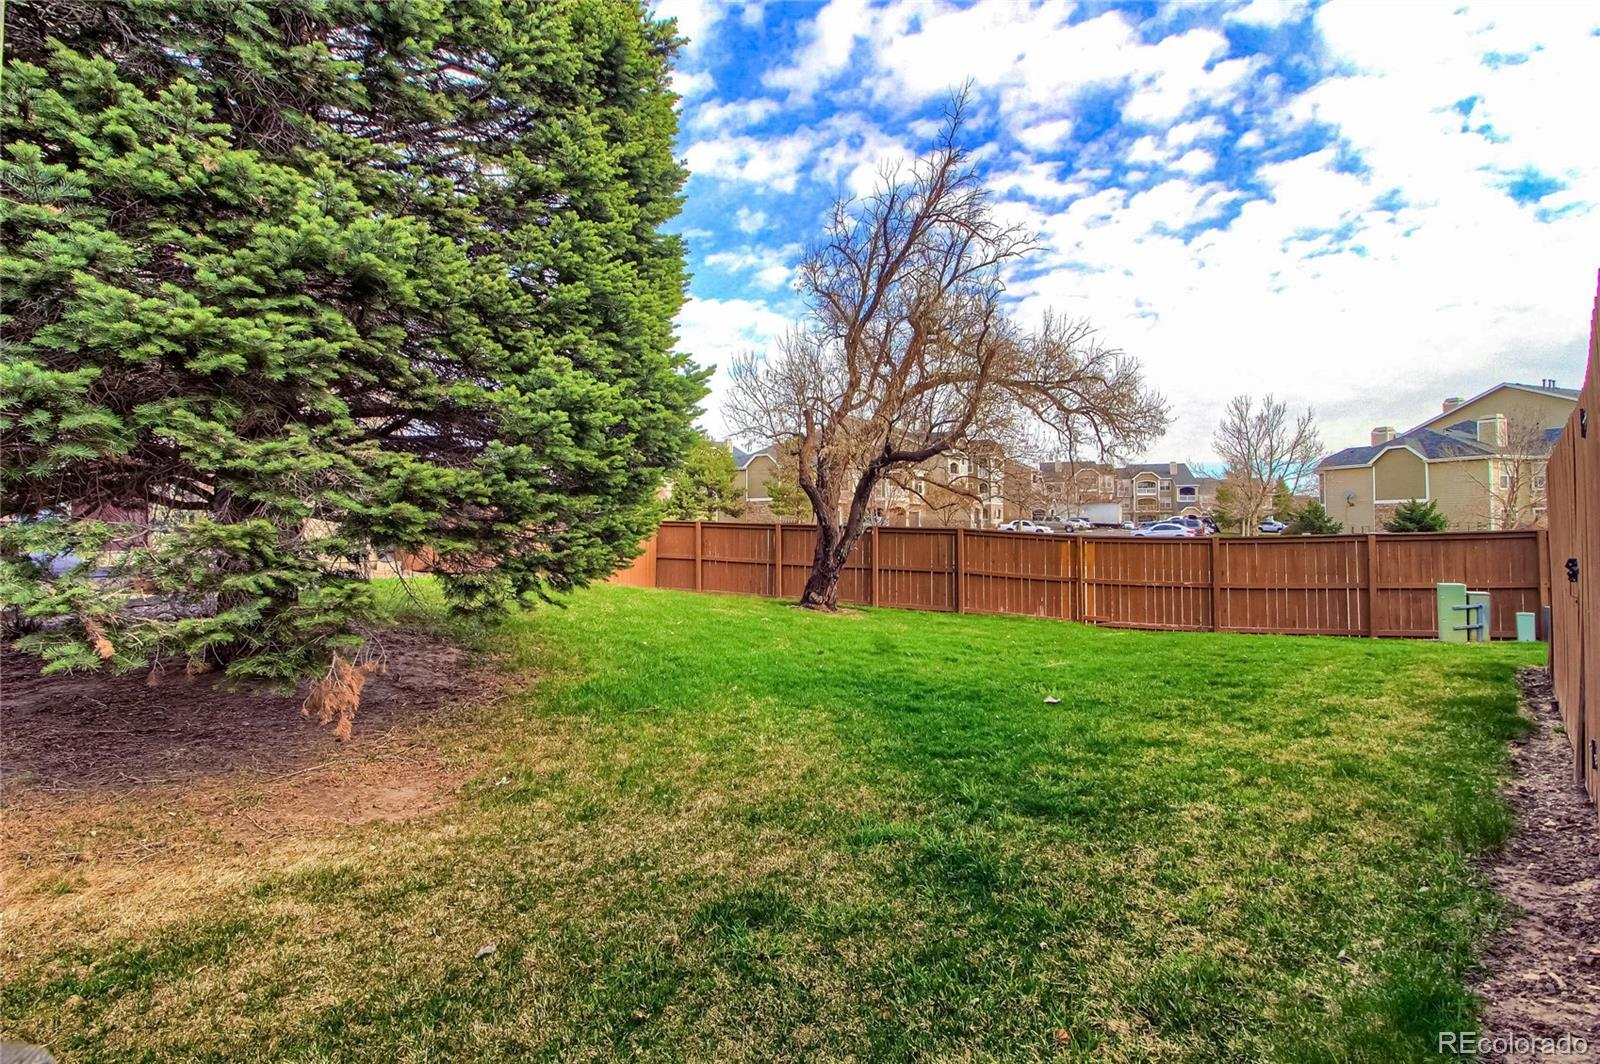 MLS# 3641043 - 31 - 3510 S Telluride Circle #C, Aurora, CO 80013